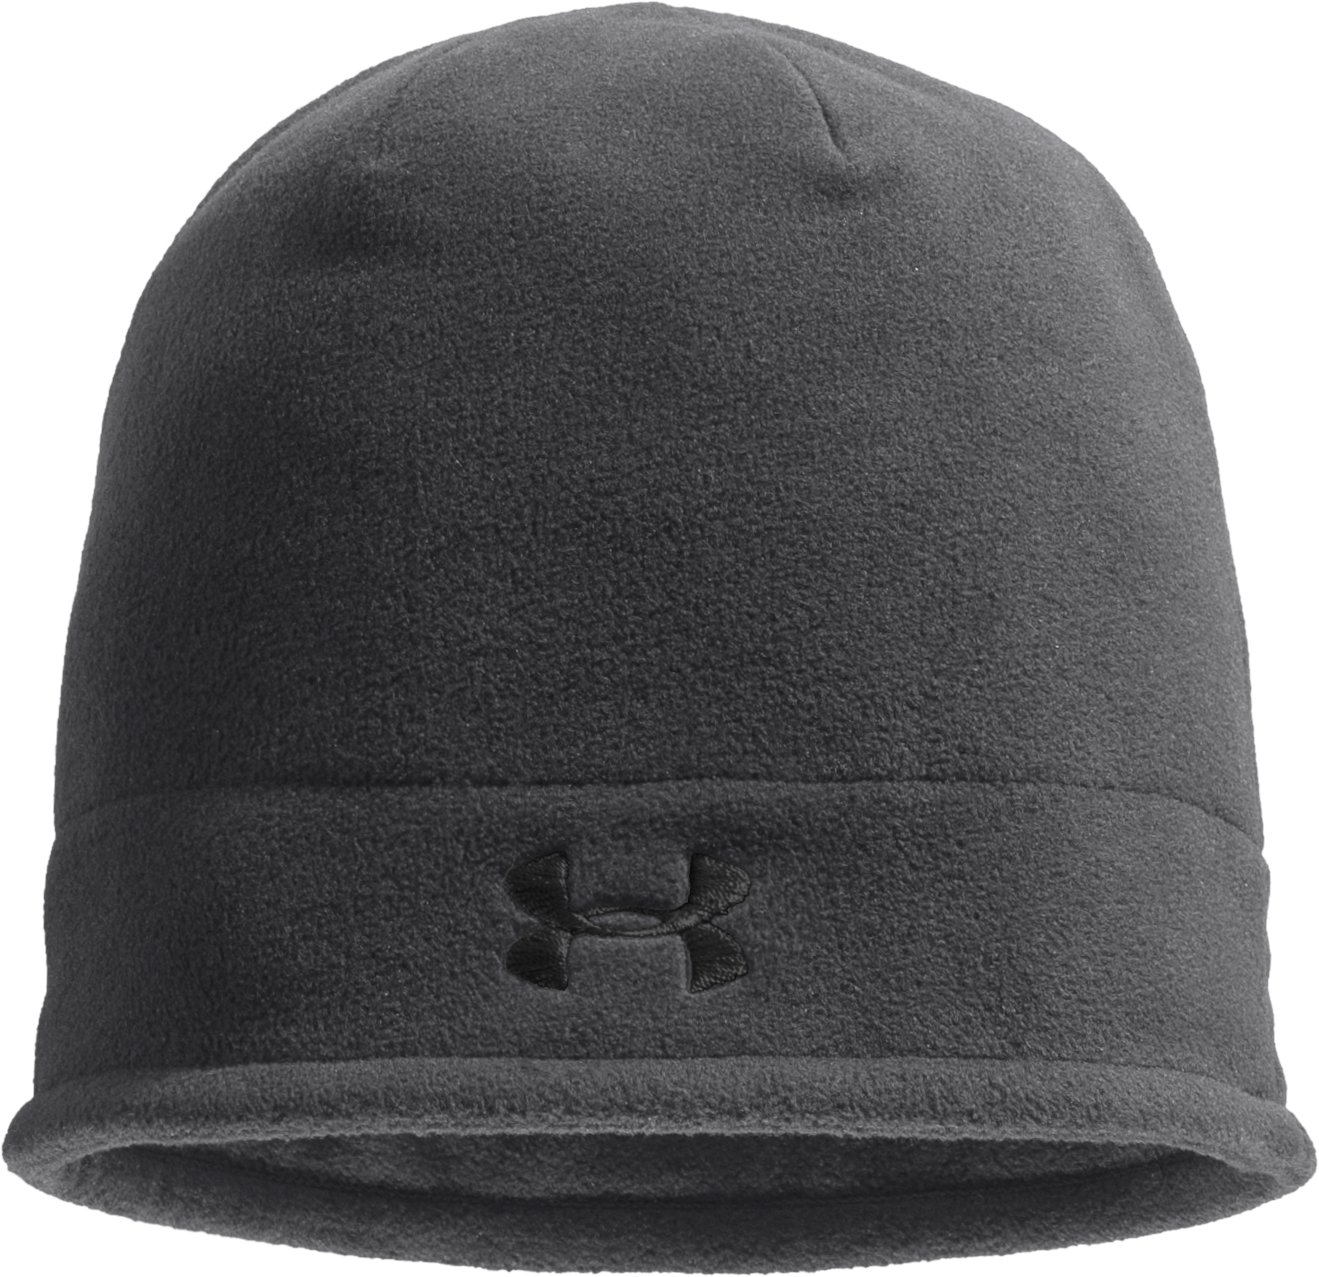 Boys' ColdGear® Infrared Fleece Storm Beanie, Graphite, zoomed image